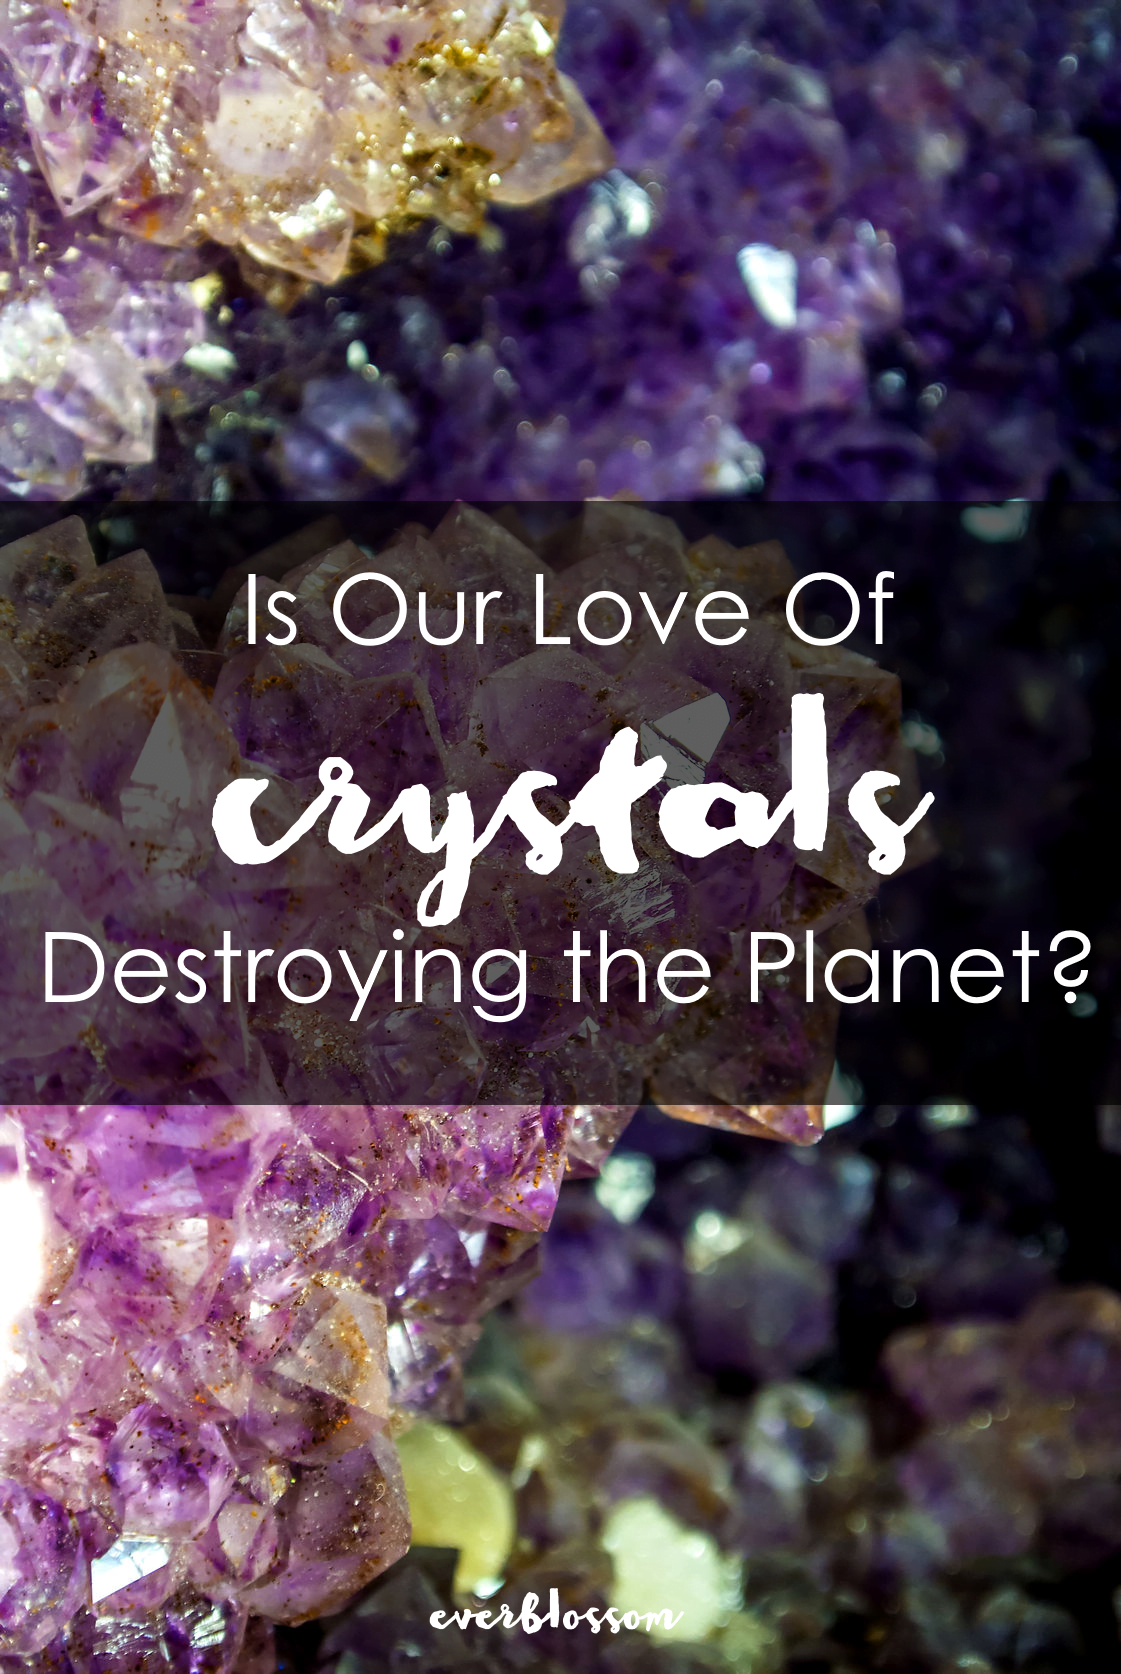 The crystal craze has no end in sight. But what are the ecological impacts?